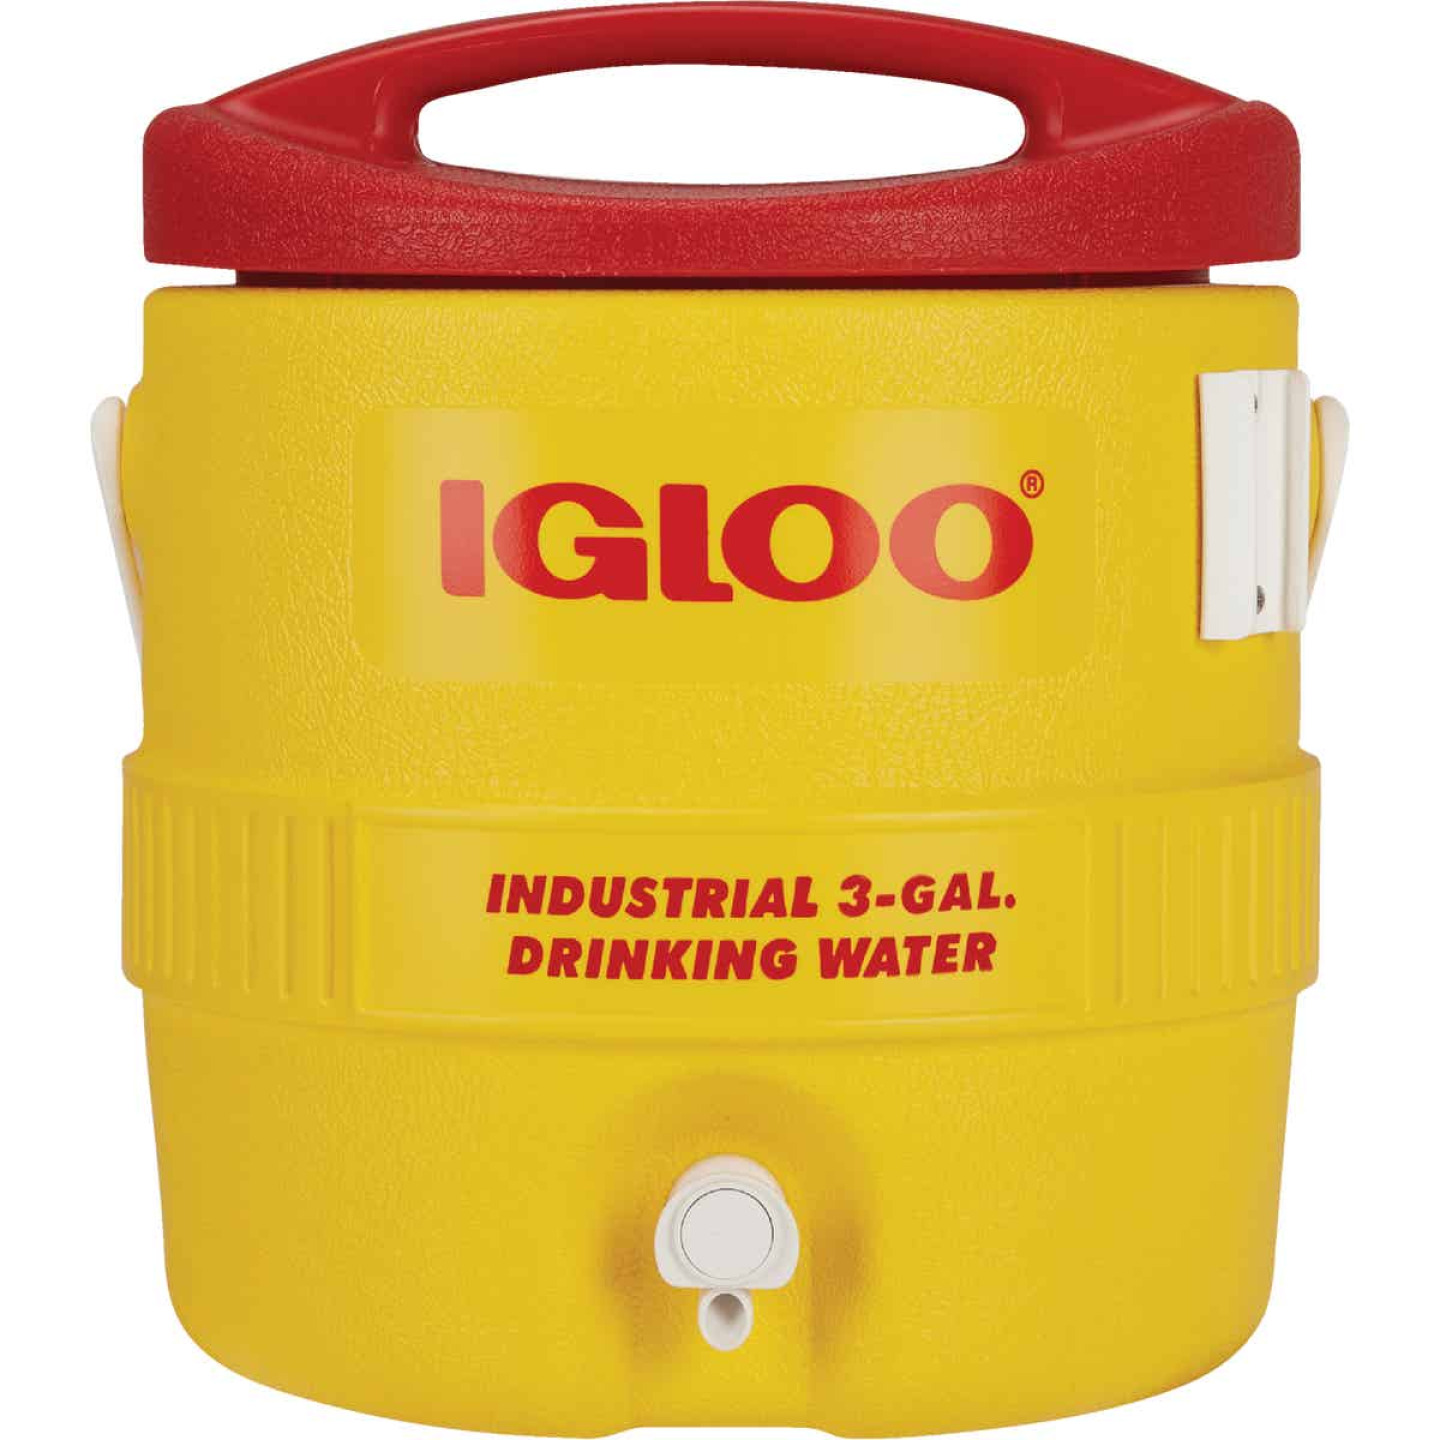 Igloo 3 Gal. Yellow Industrial Water Jug Image 2